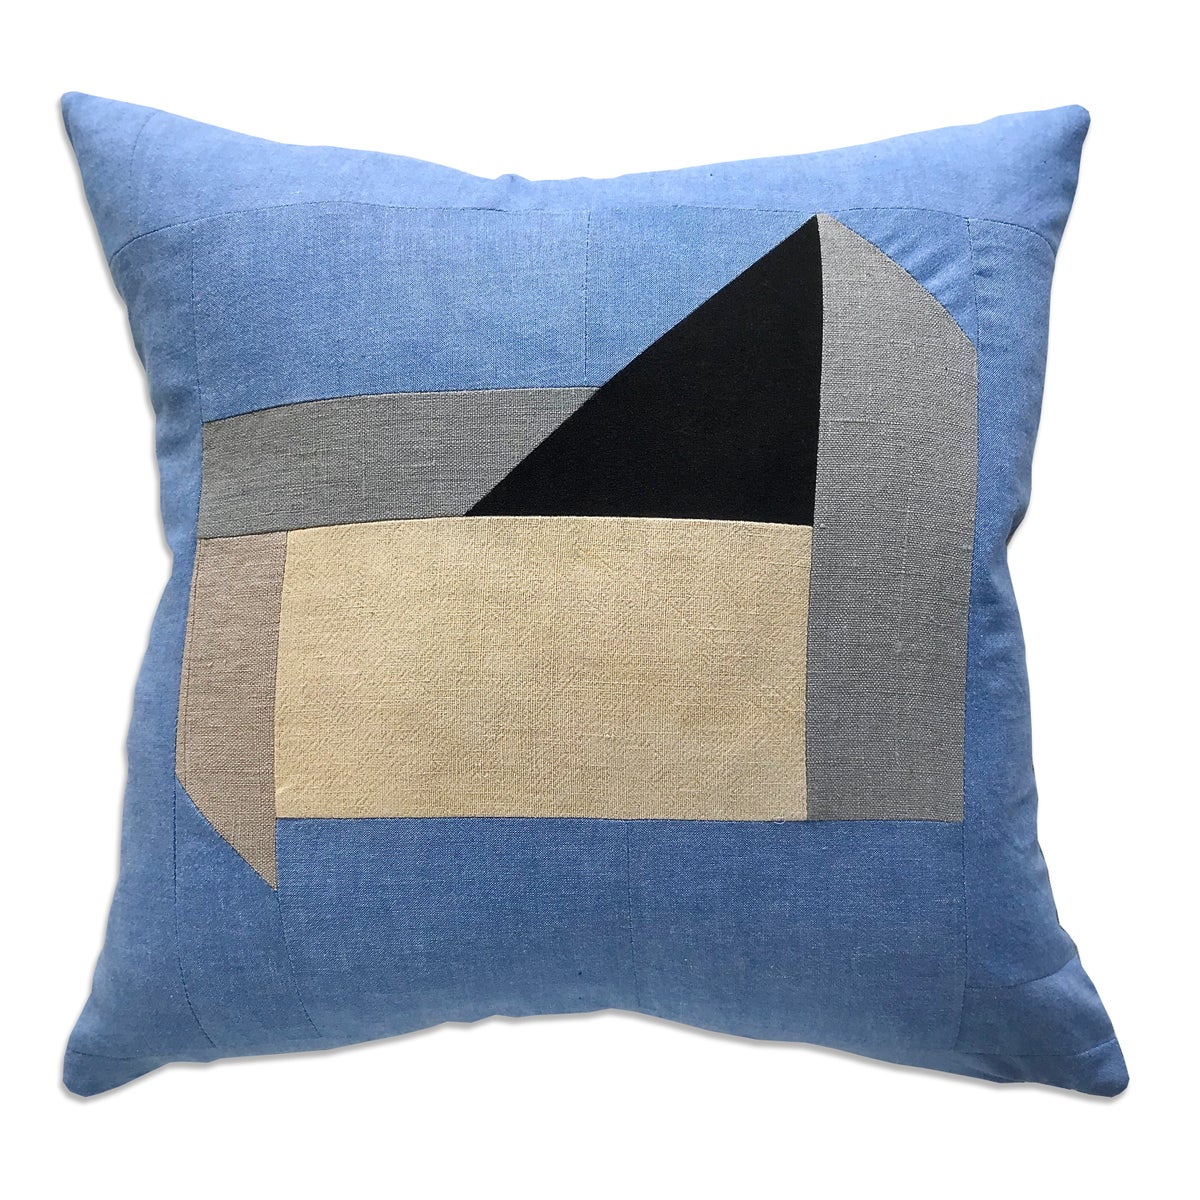 Image of GRAPHIC COLLAGE PILLOW #2